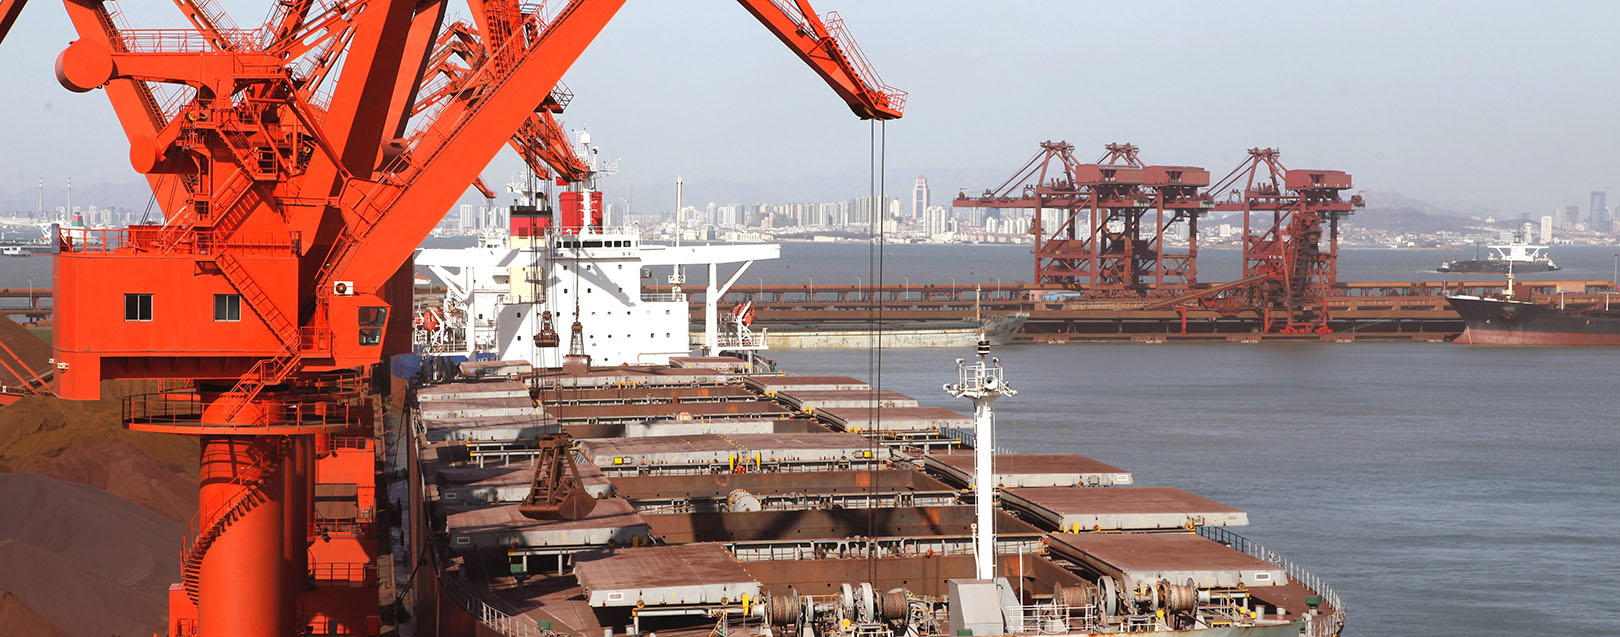 India's iron ore imports ease, exports rise on policy support